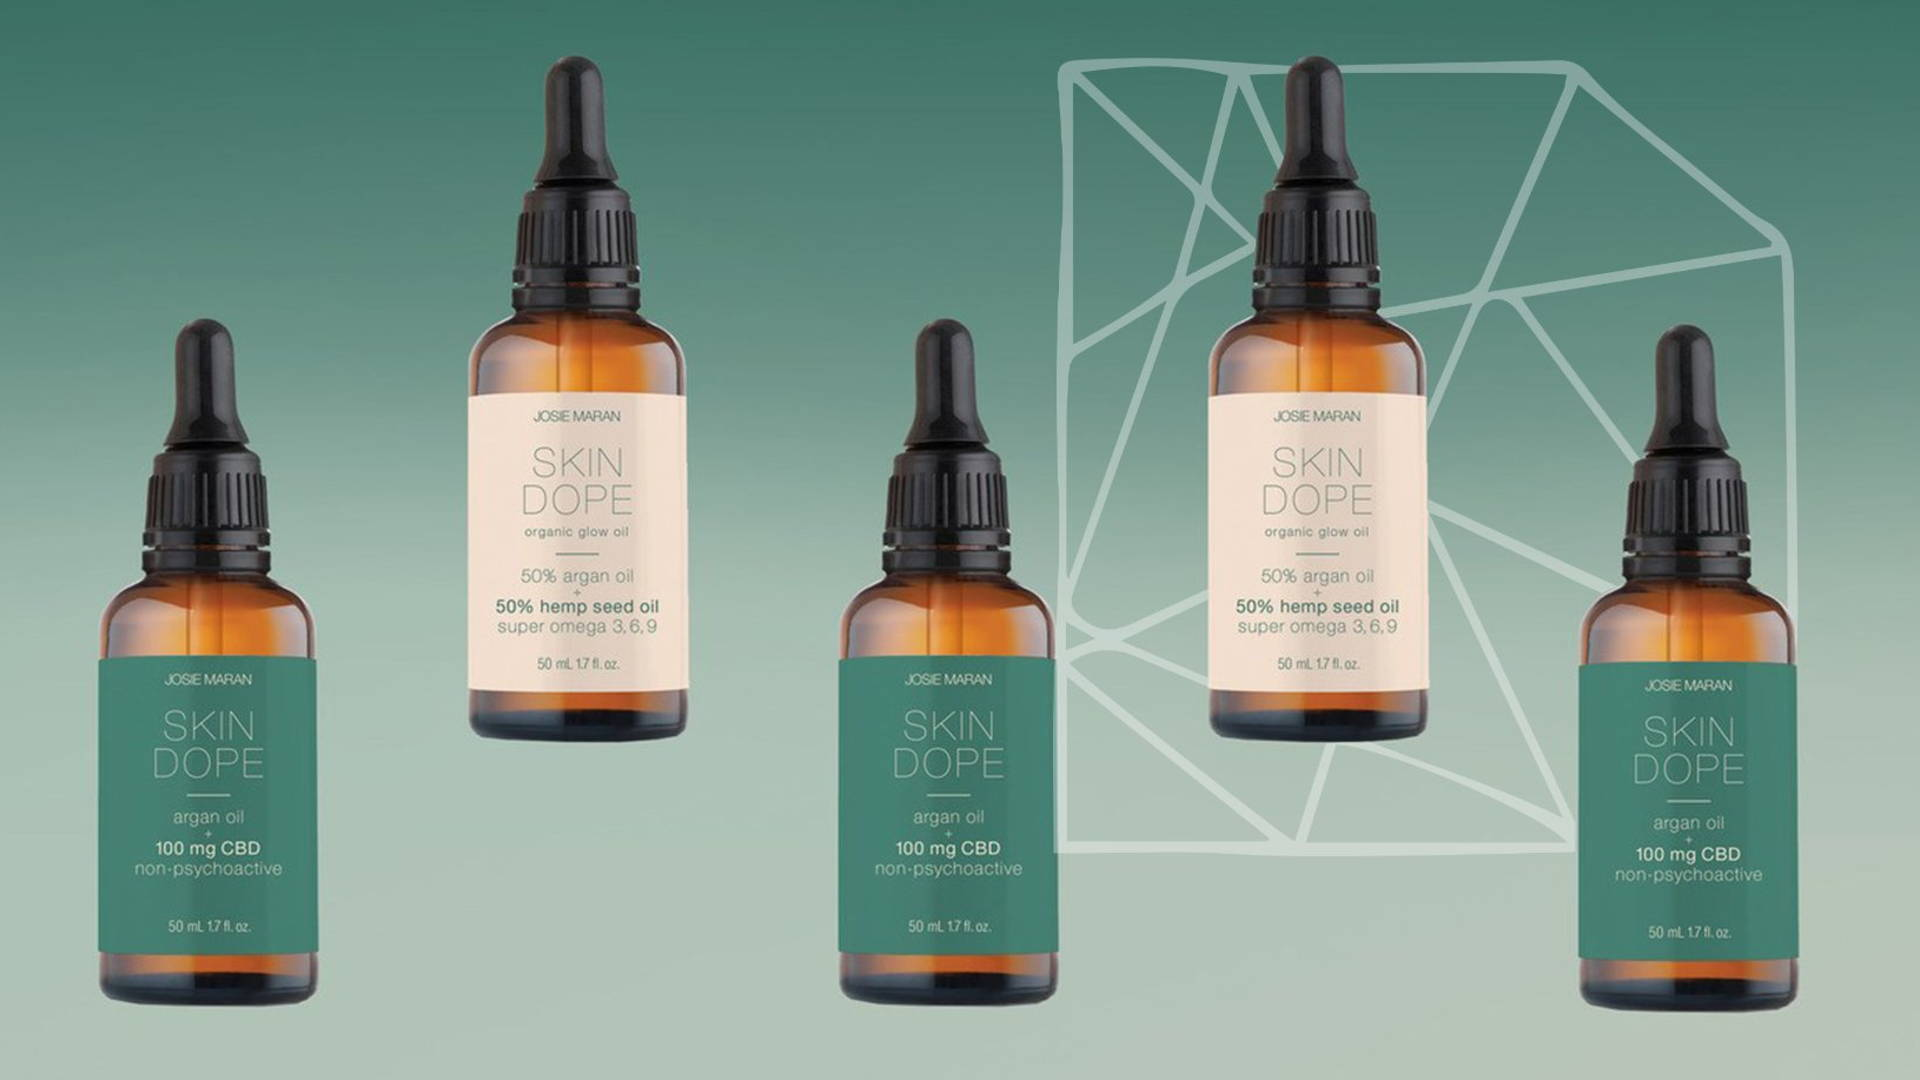 6 CBD-Infused Beauty & Wellness Products To Add To Your